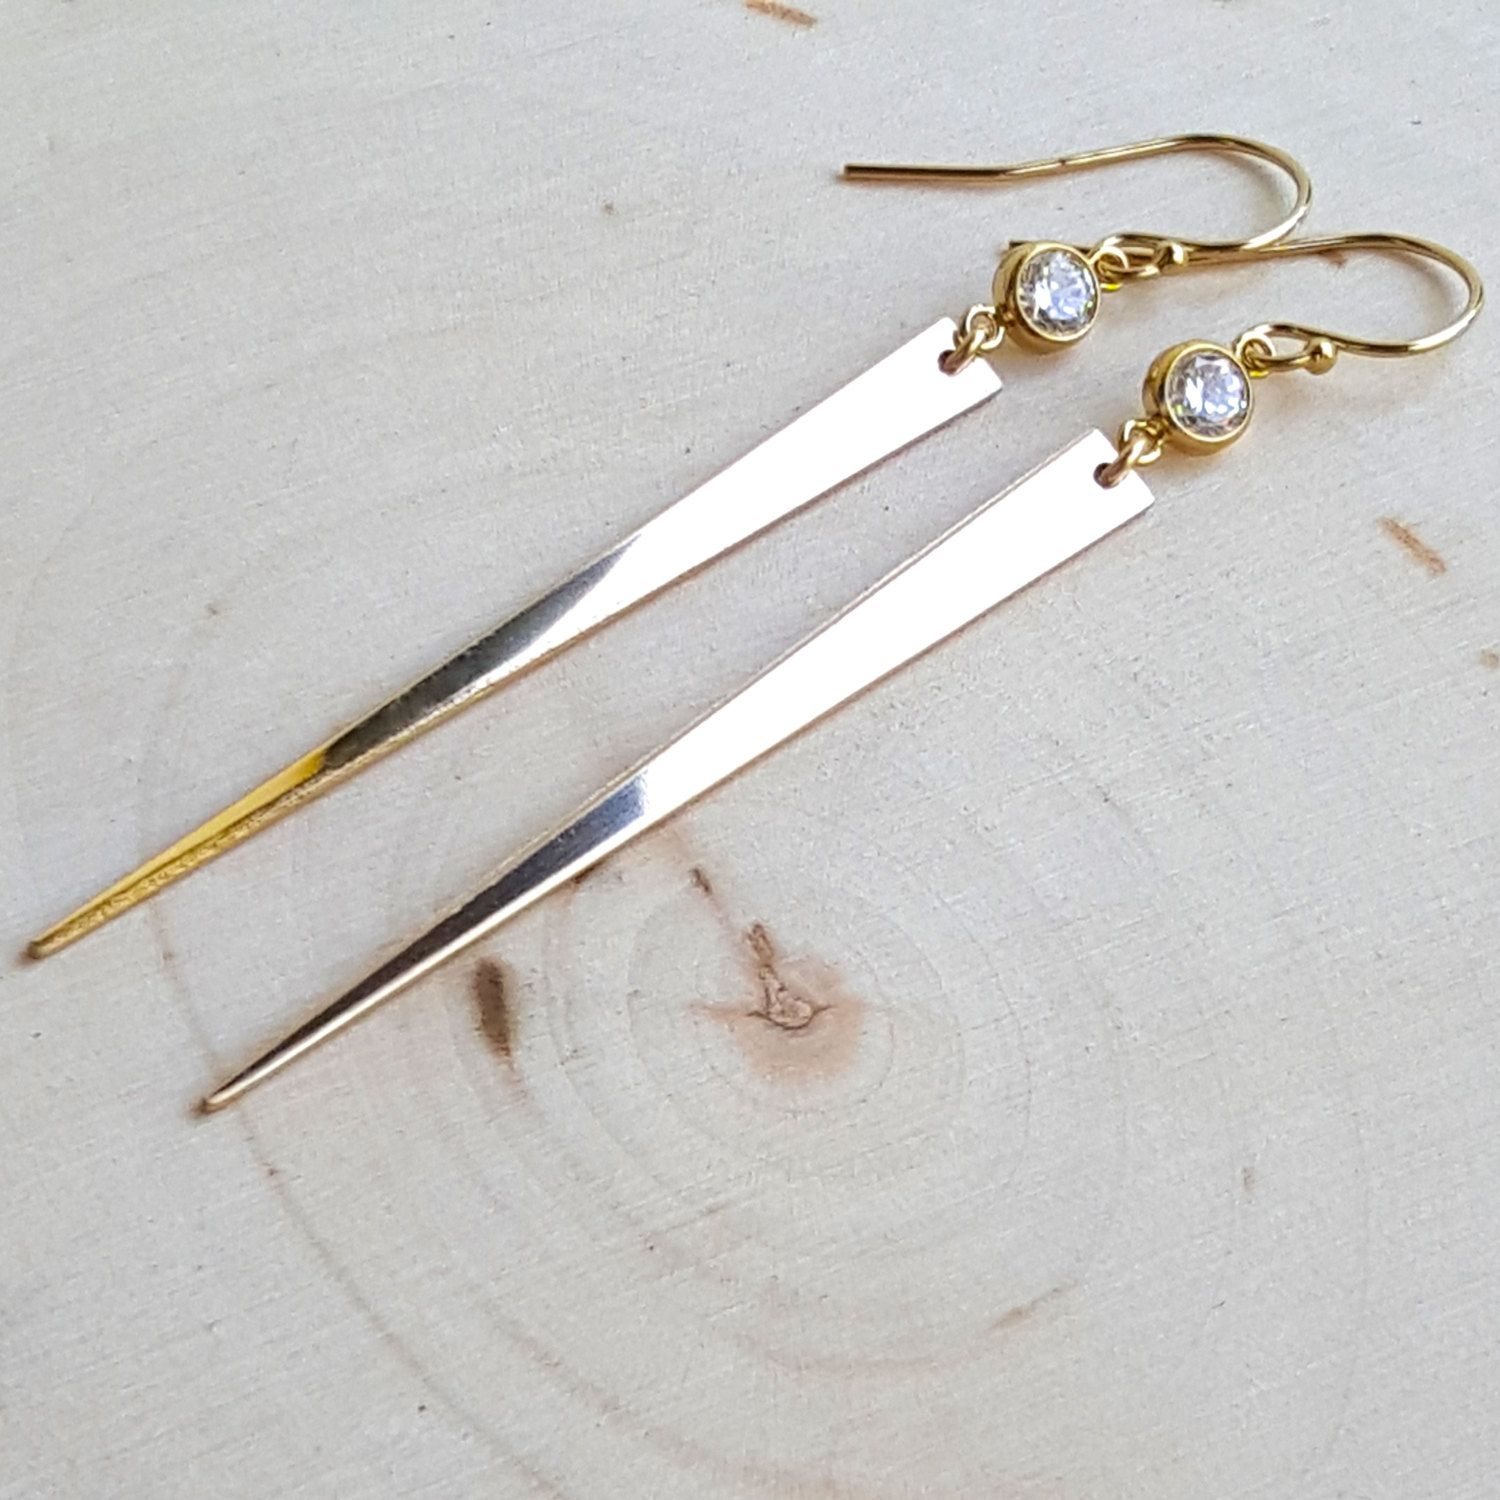 Gold Filled Spike Earrings with Cubic Zirconia by MissEleniousBoutique on Etsy